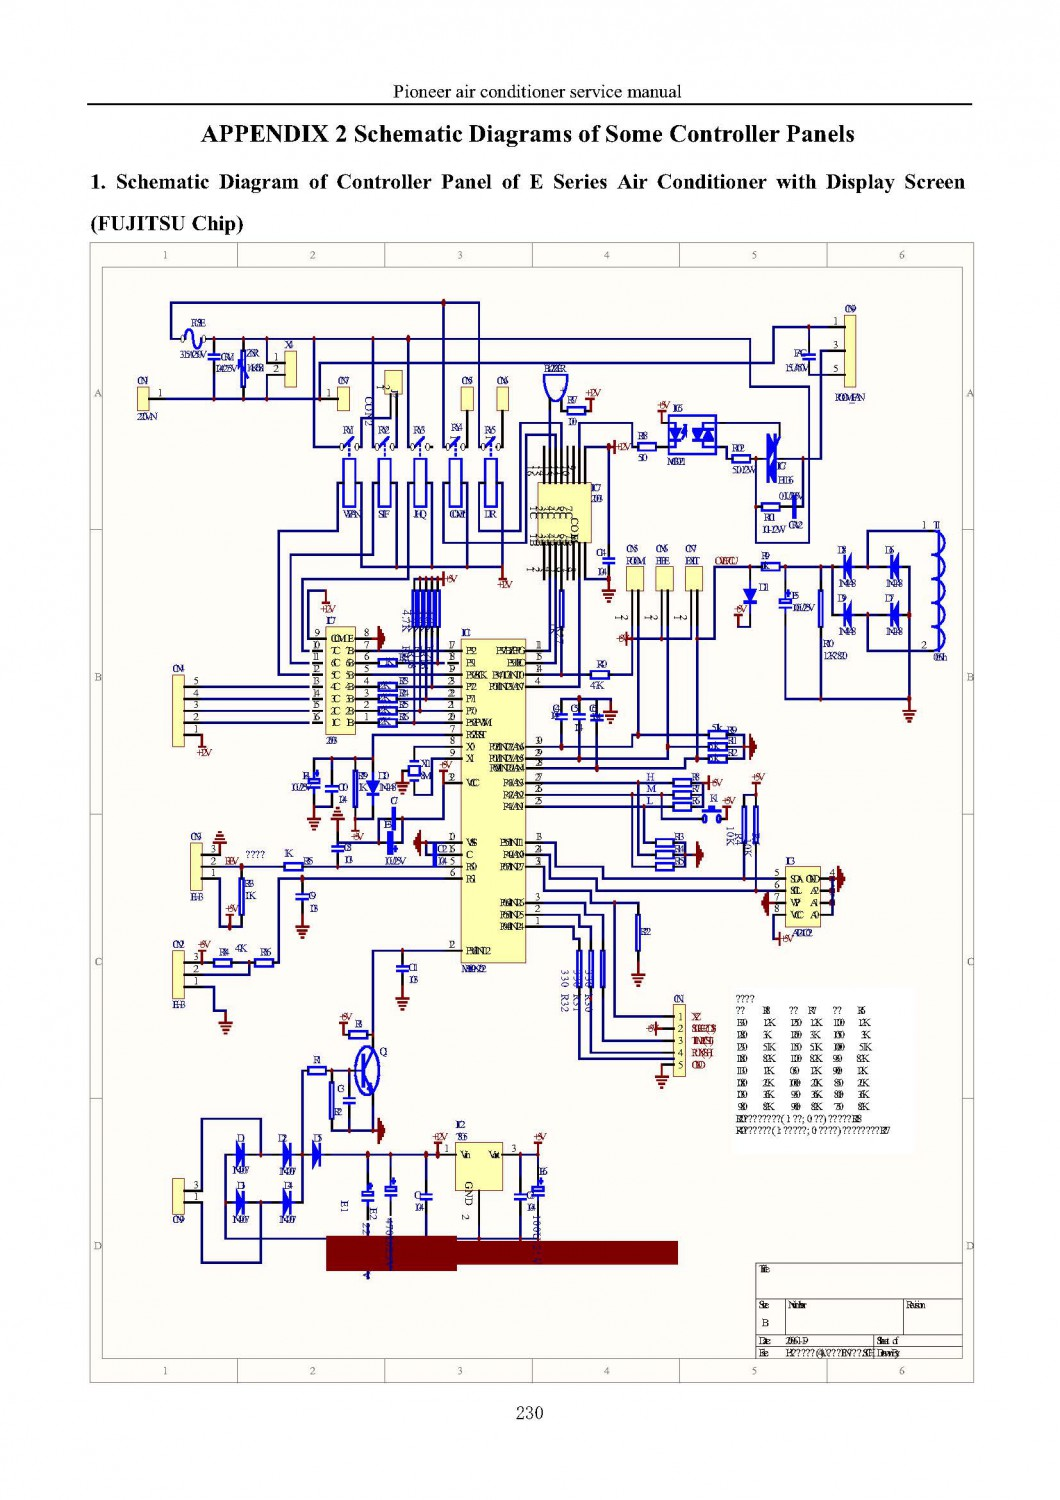 FUJITSU Chip. Schematic Diagram of Controller Panel of E Series Air Conditioner with Display Screen , FUJITSU Chip